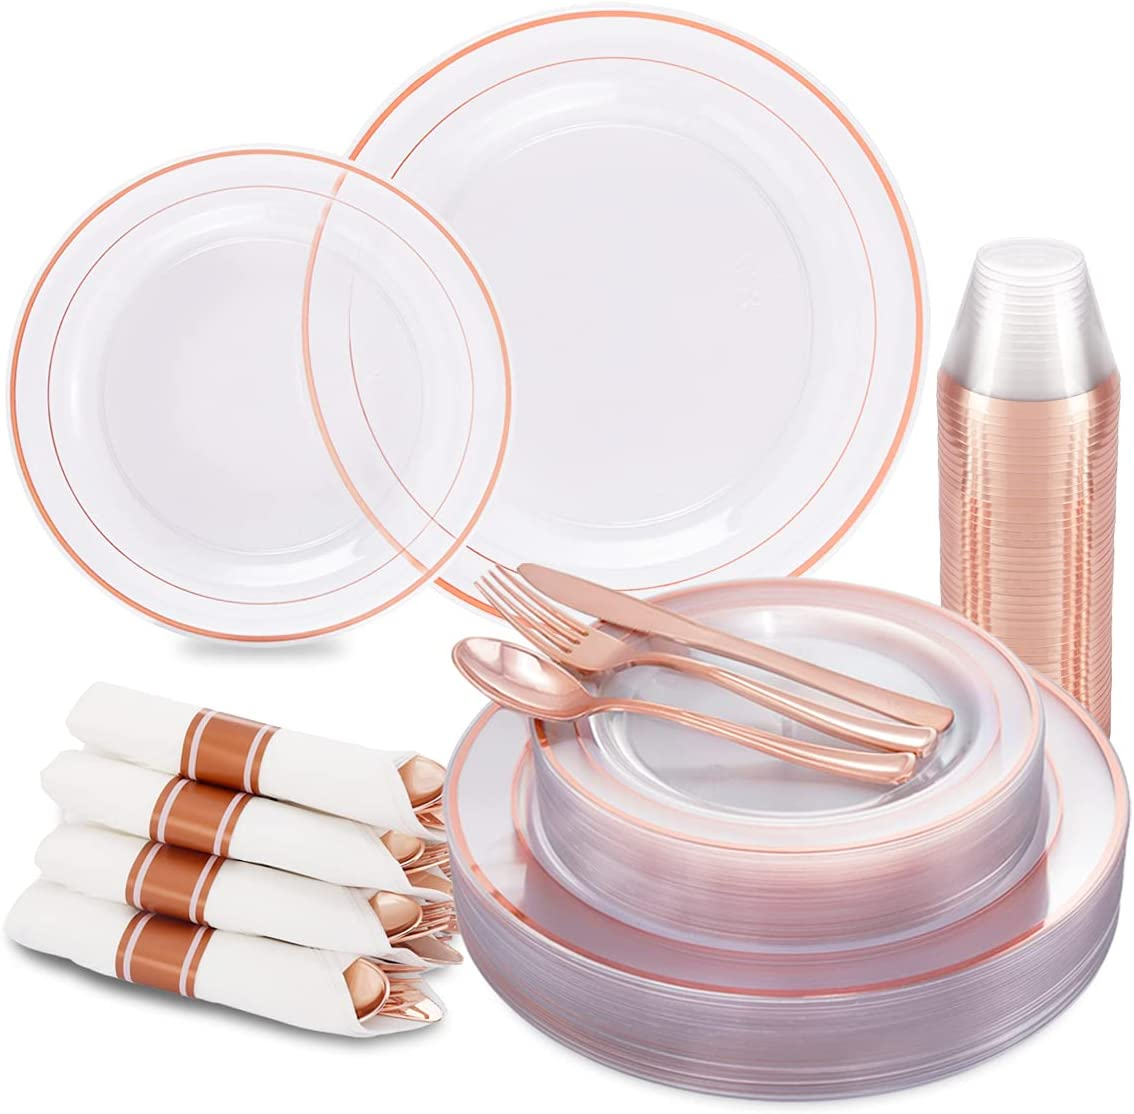 I00000 210Pcs Rose Austin Mall Gold Plastic Plates Silverware and Cups Opening large release sale with